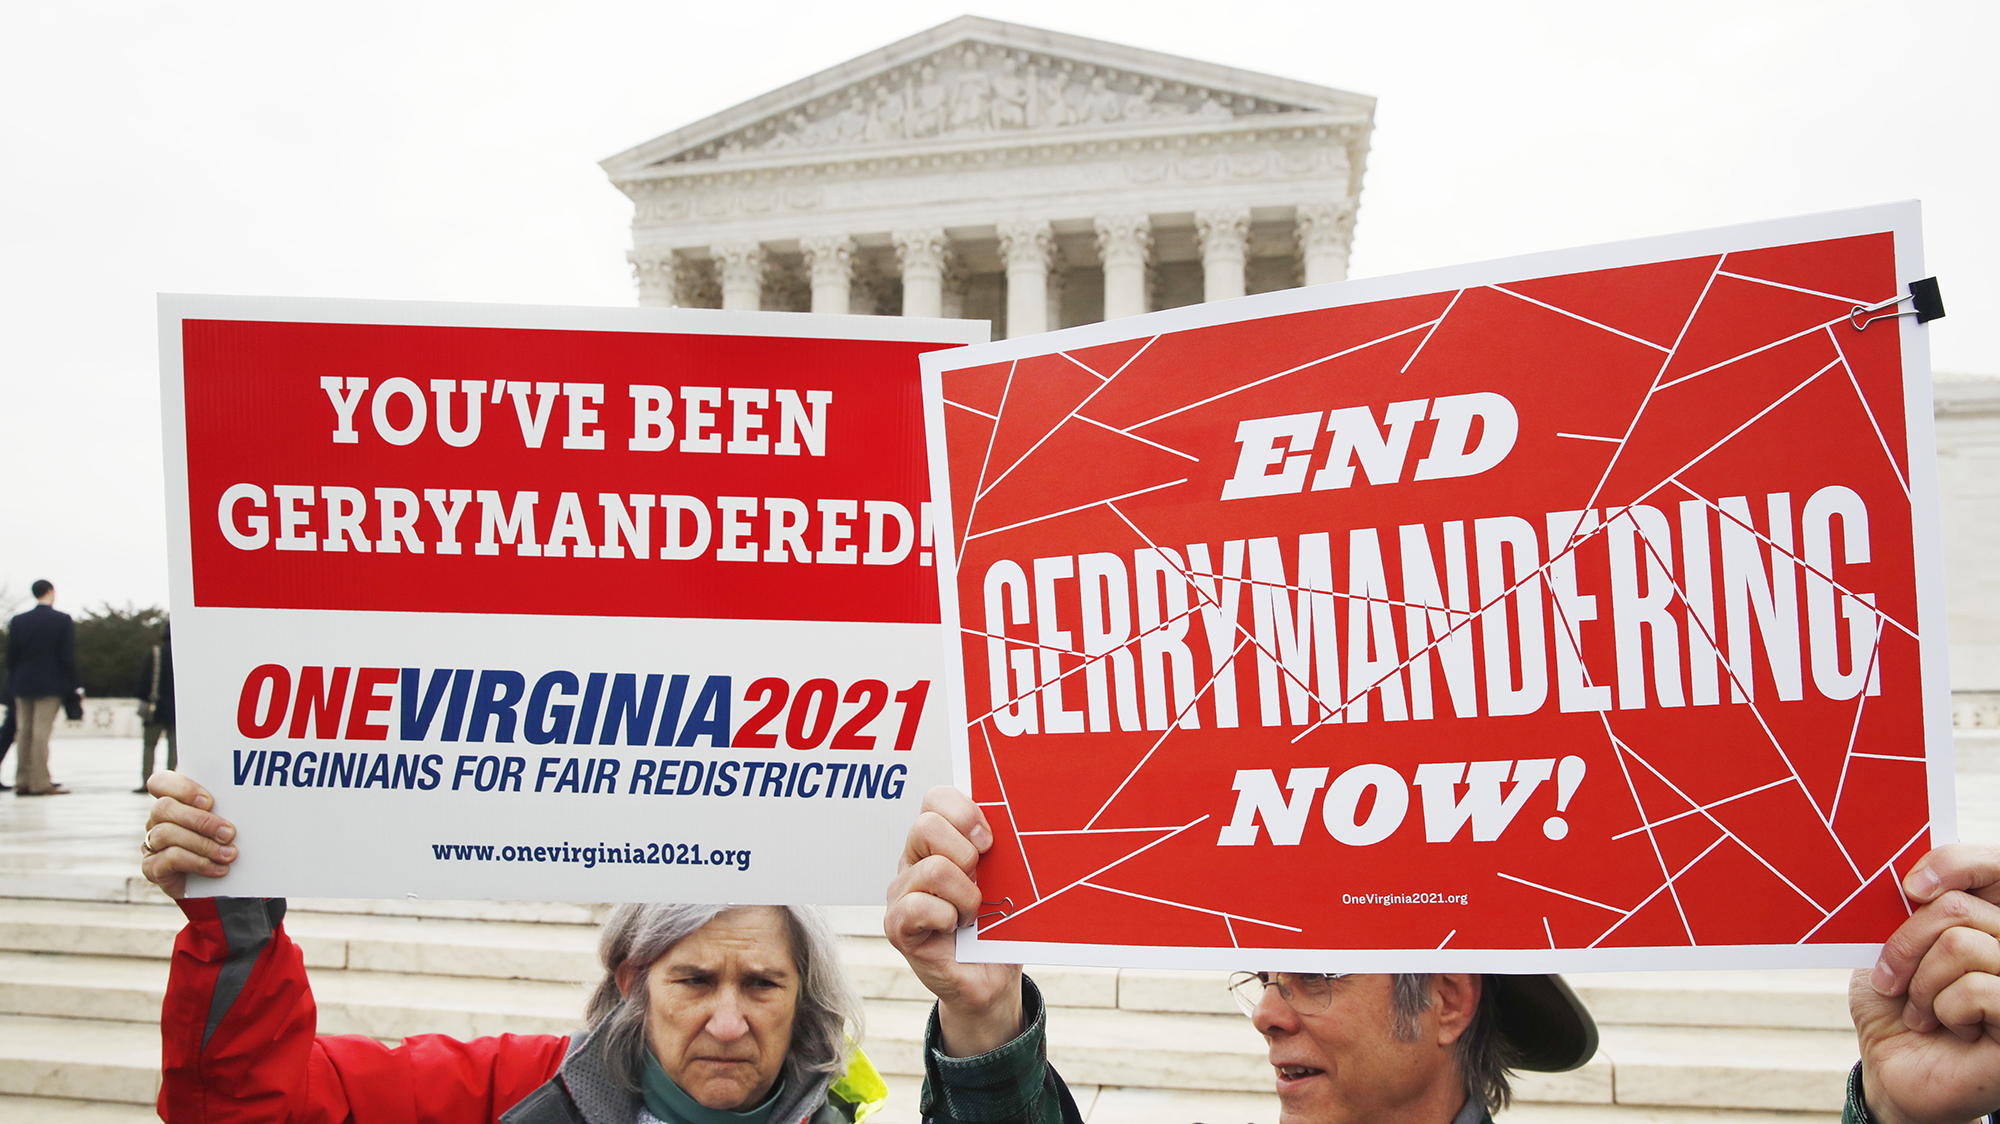 Gerrymandering arguments must prove harm to voters